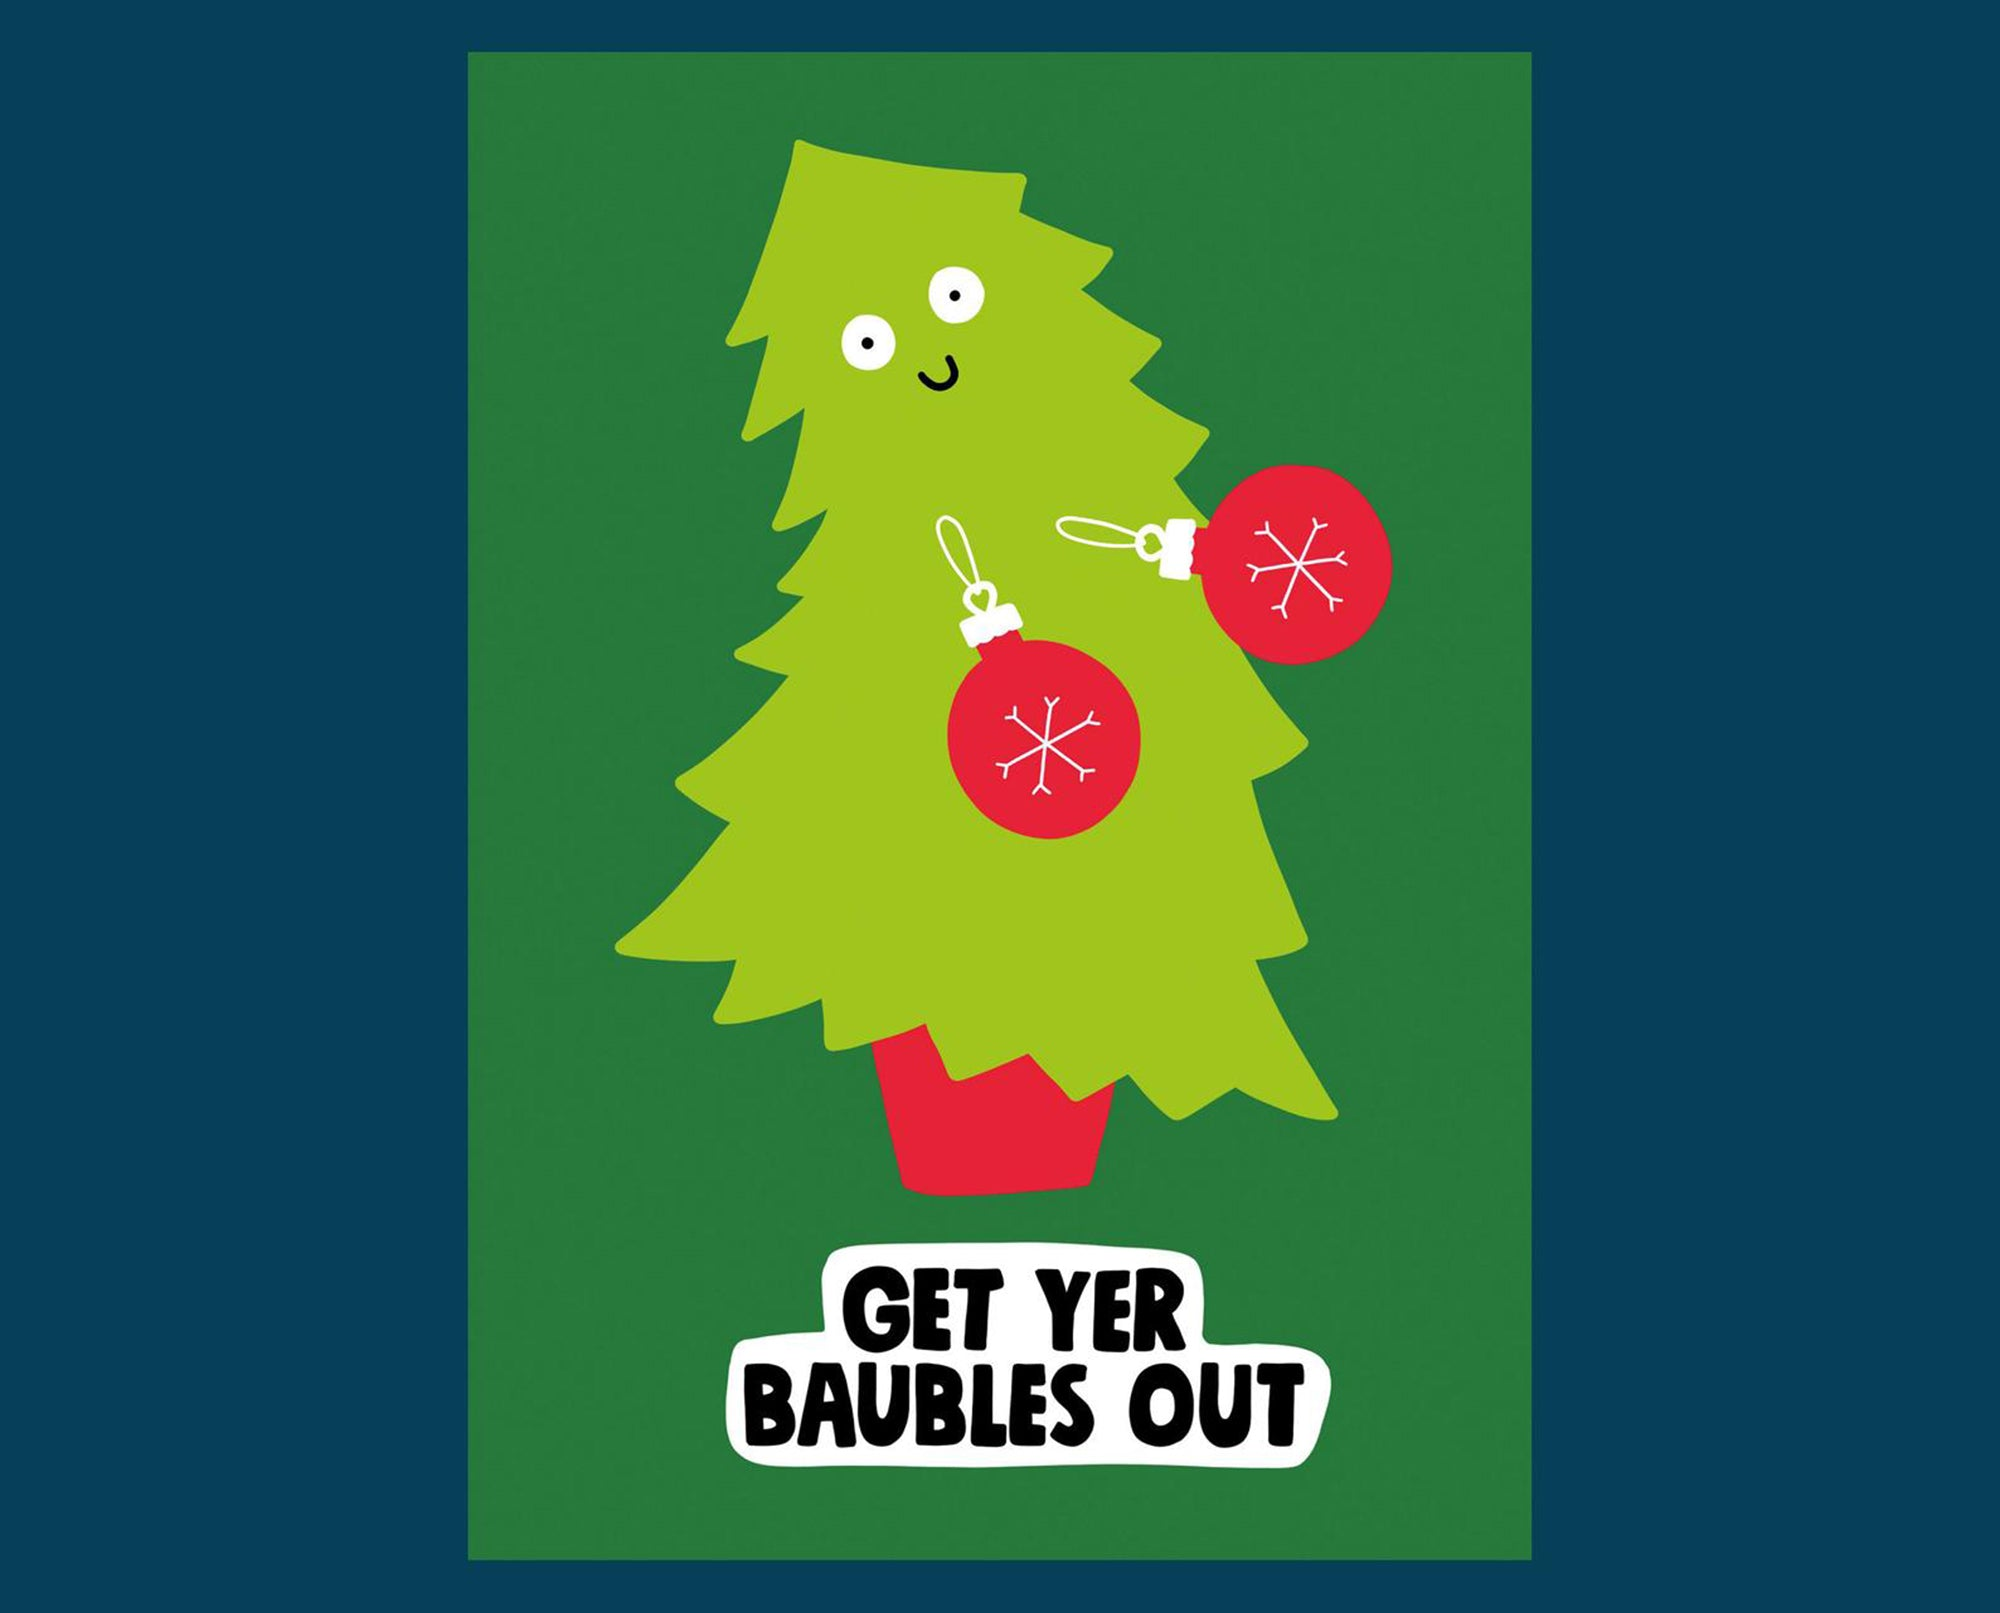 Get yer baubles out Christmas card - Inspired